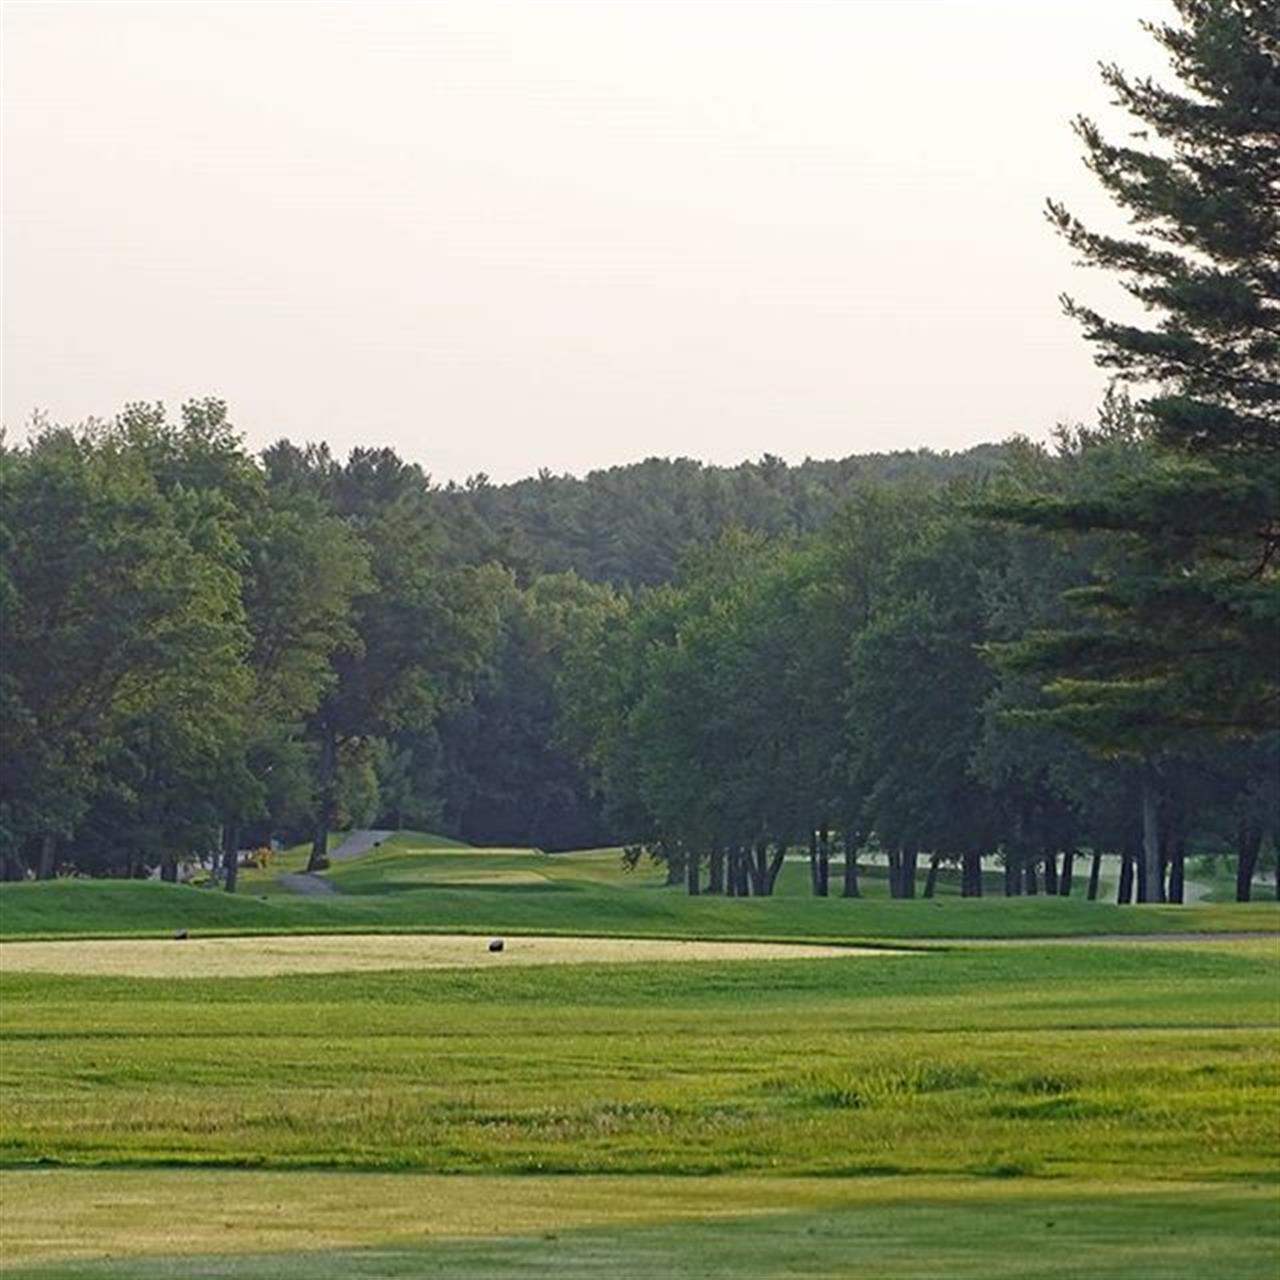 #haven The Haven, ready for golfers in Boylston, MA!  #golf #golfcourse #realestate #boylstonma #leadingrelocal